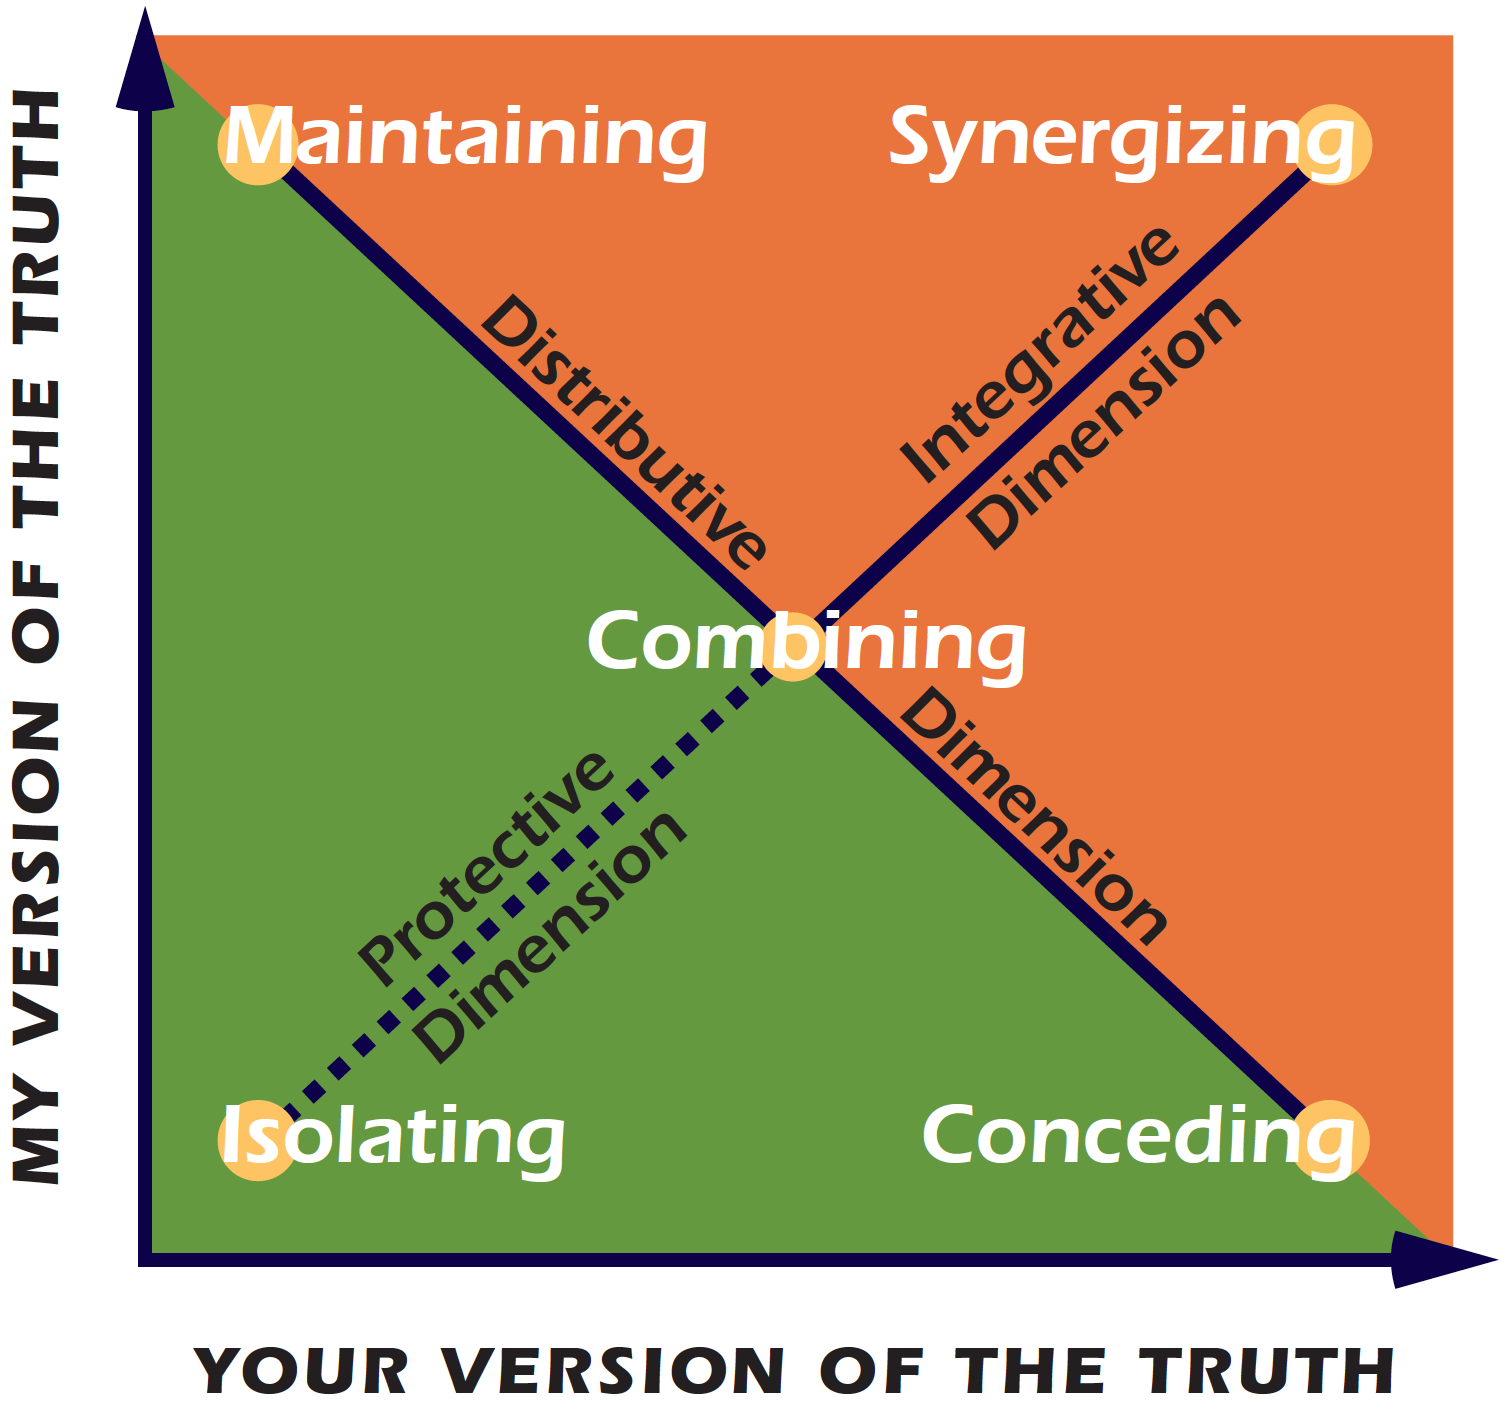 The TKI Model and Expanding Consciousness in Organizations